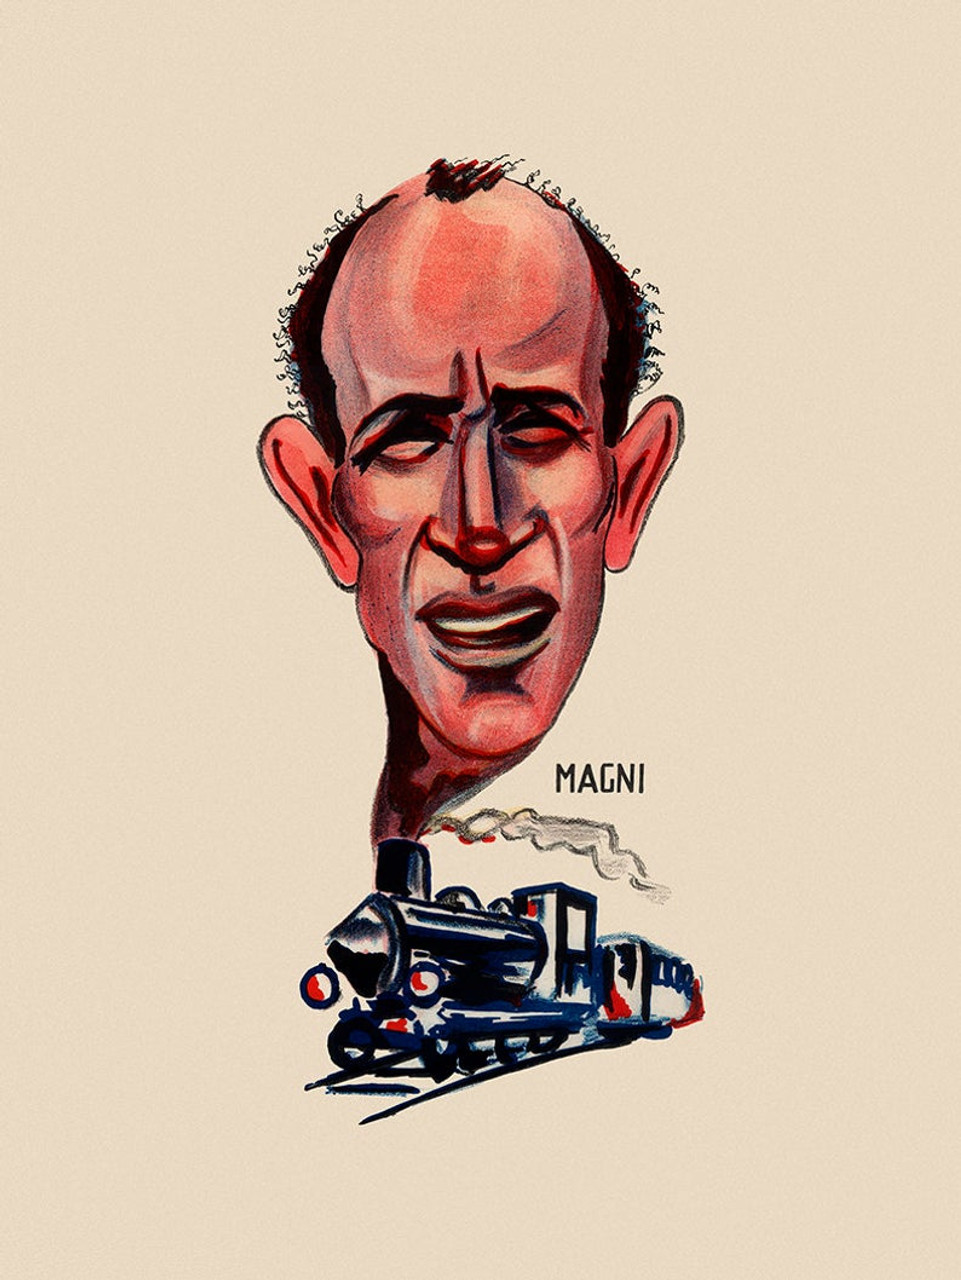 Firenzo Magni Caricature Poster from the 1949 Giro d'italia